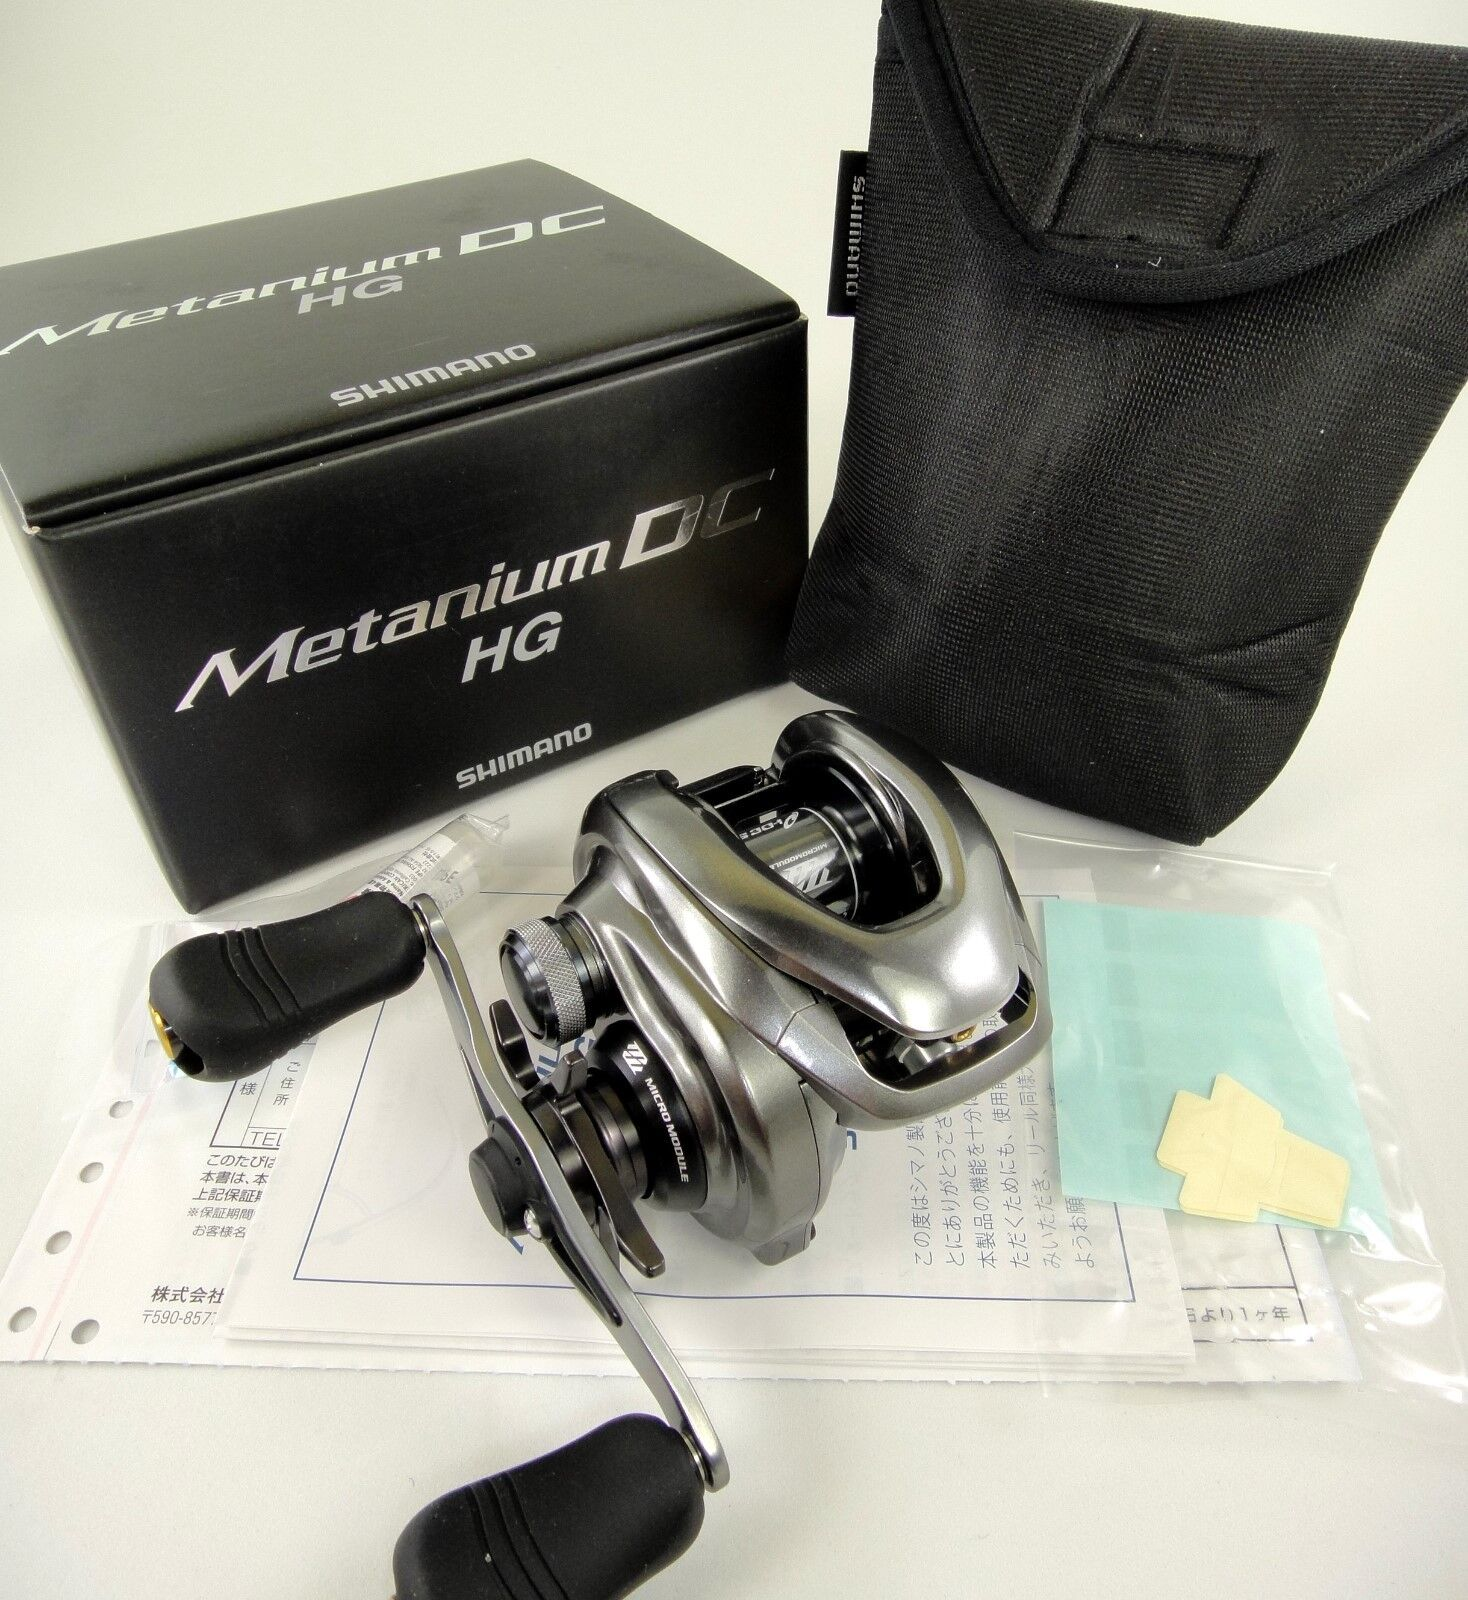 NEW SHIMANO METANIUM DC HG RIGHT HAND REEL 1-3 DAYS DELIVERY U.S SELLER